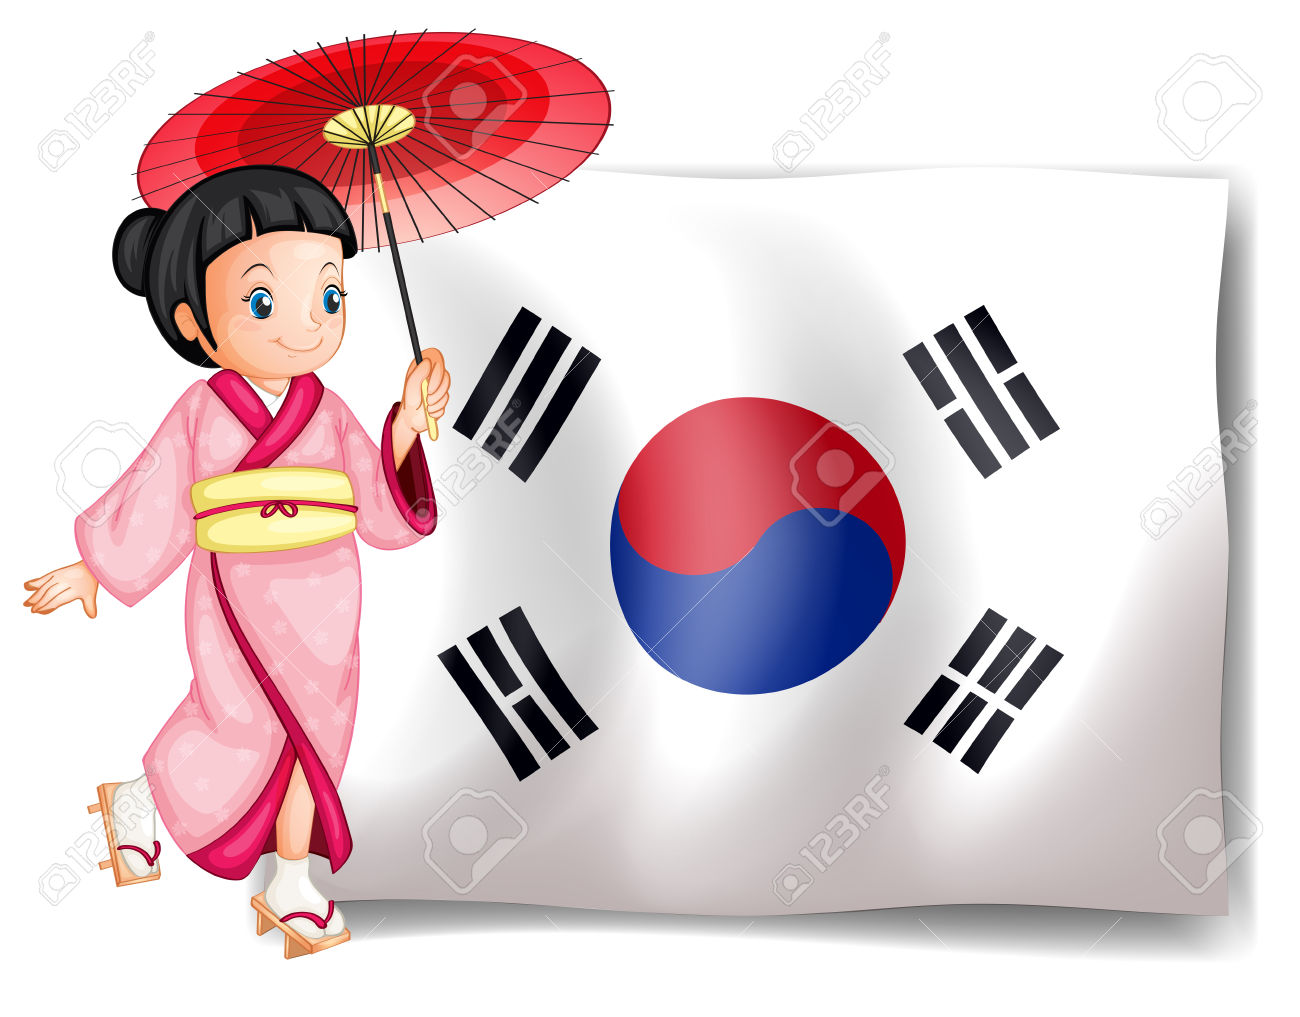 South Korea clipart #15, Download drawings